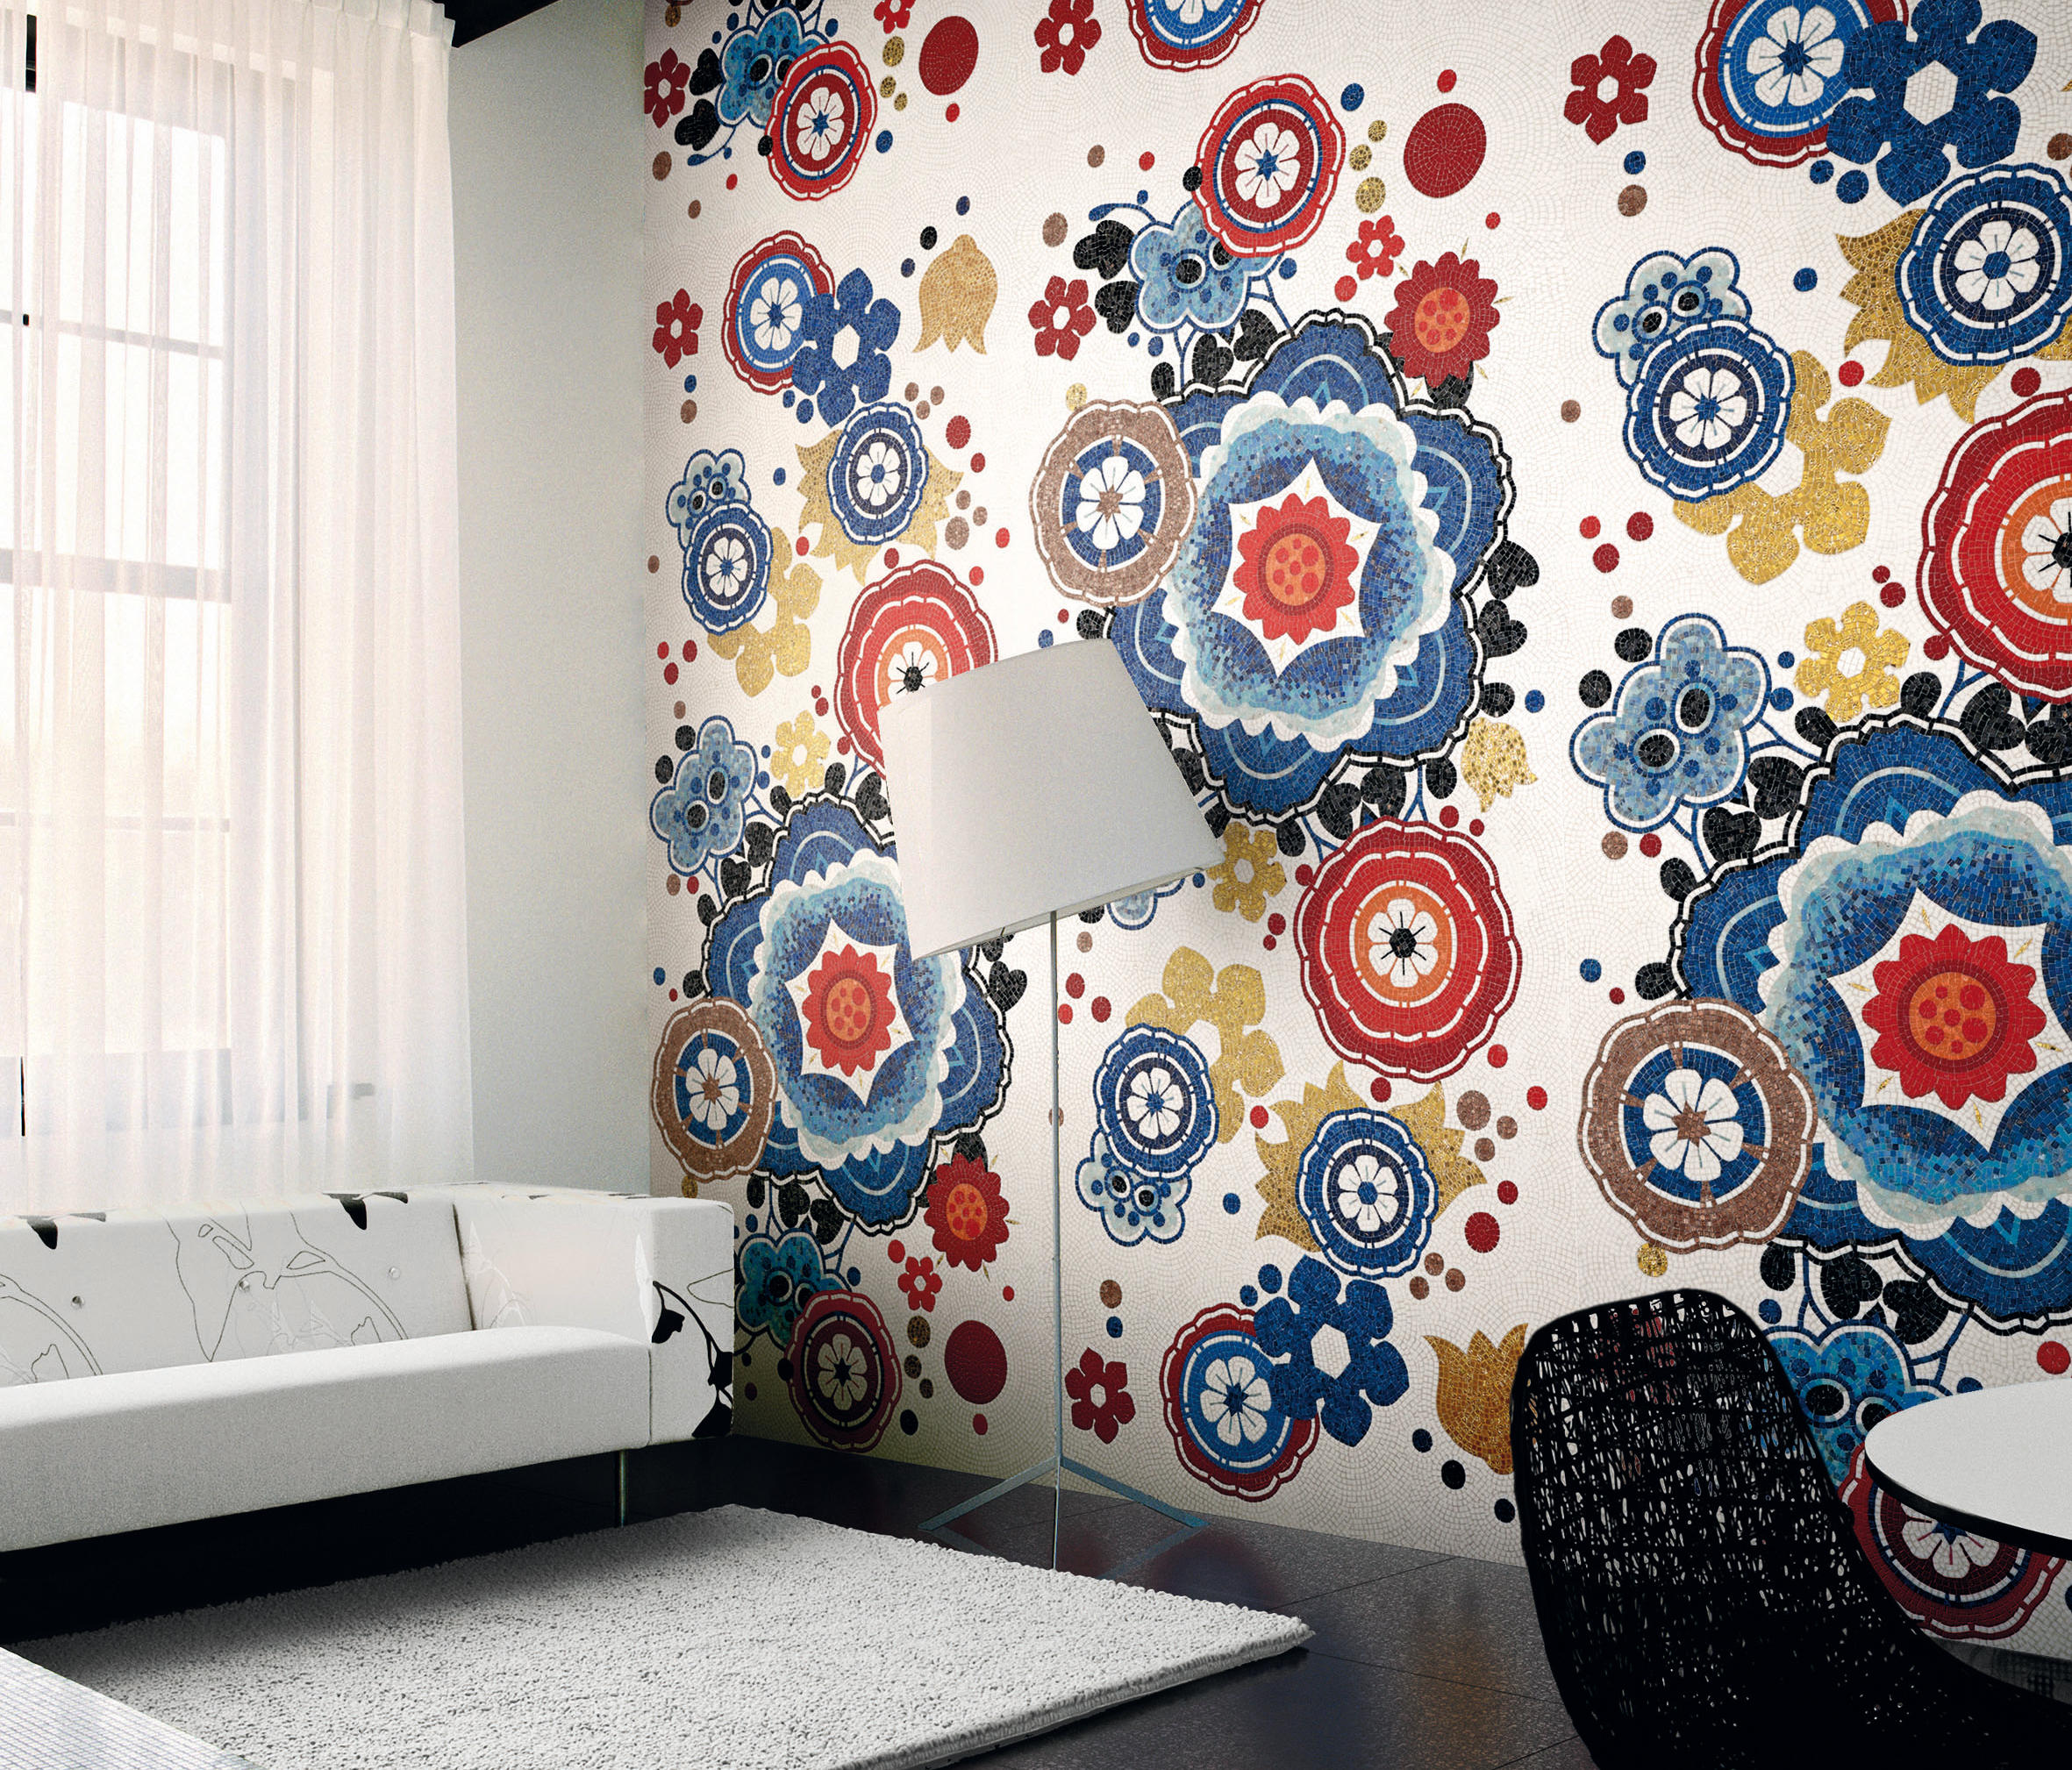 Bloem rosso glass mosaics from bisazza architonic - Bagno mosaico rosso ...